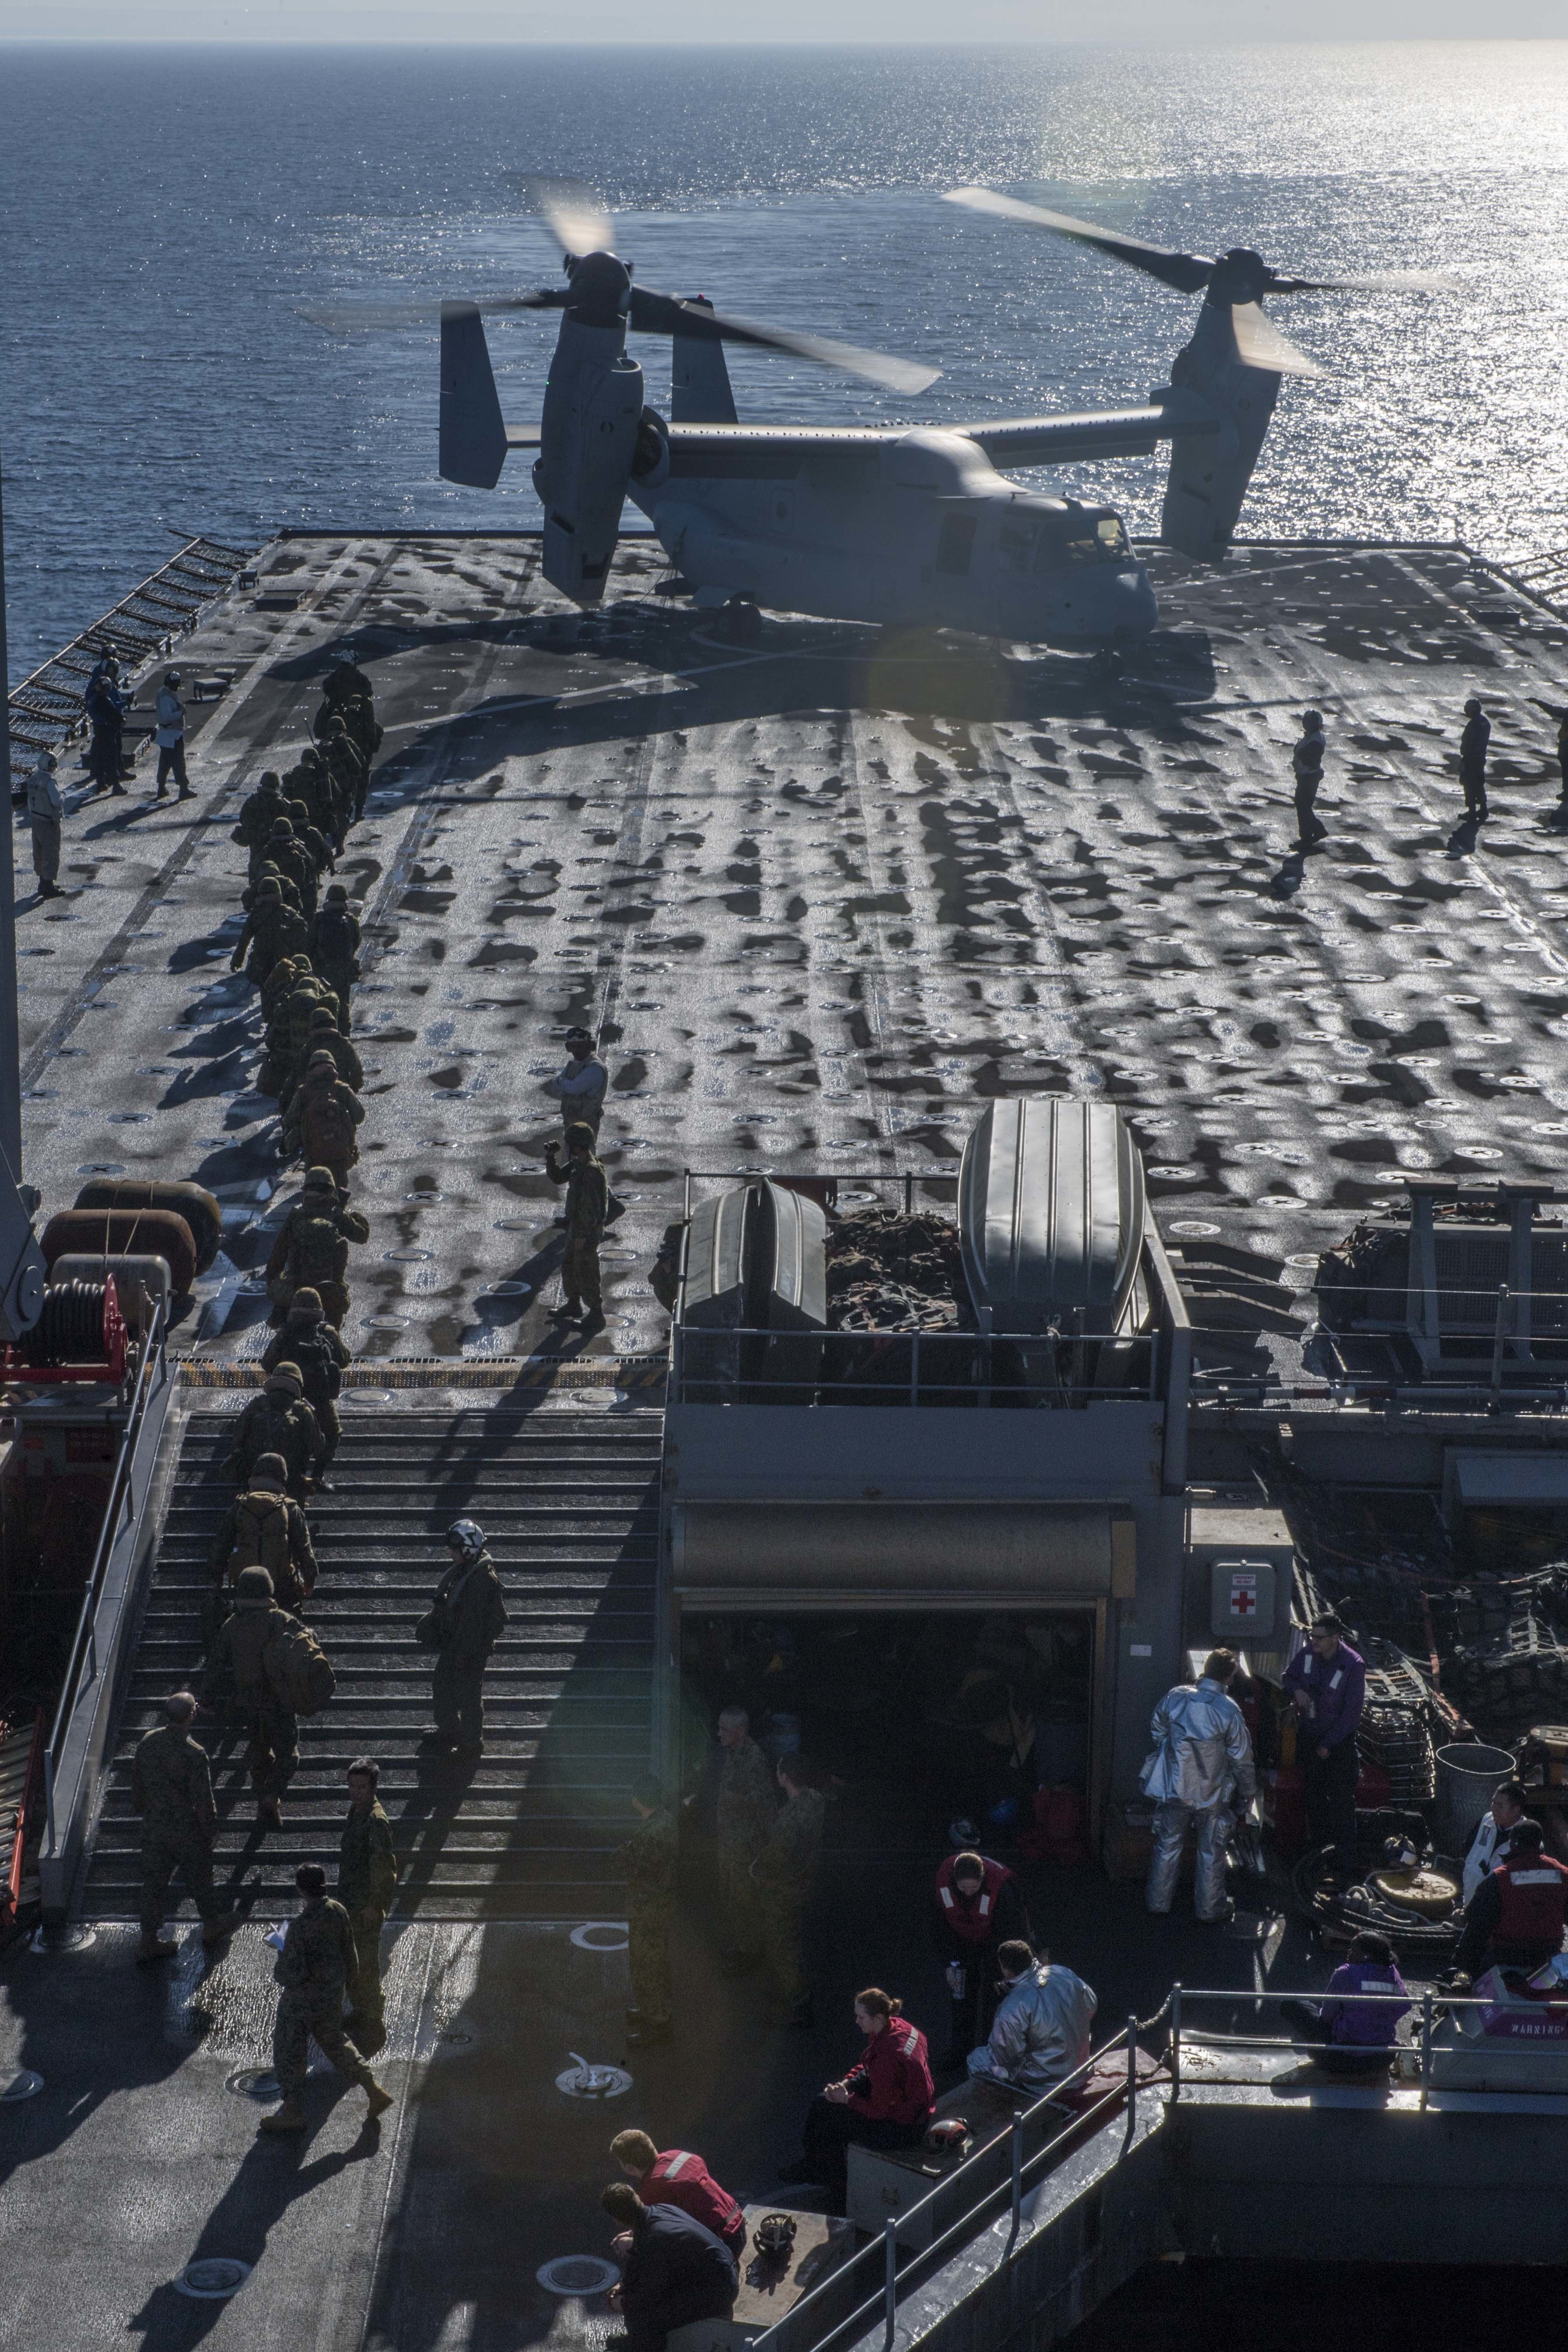 f64fe059c250 Upload Date  Photo Date  Title. U.S. Marines and Japanese forces board an  MV-22 Osprey tilt-rotor aircraft on